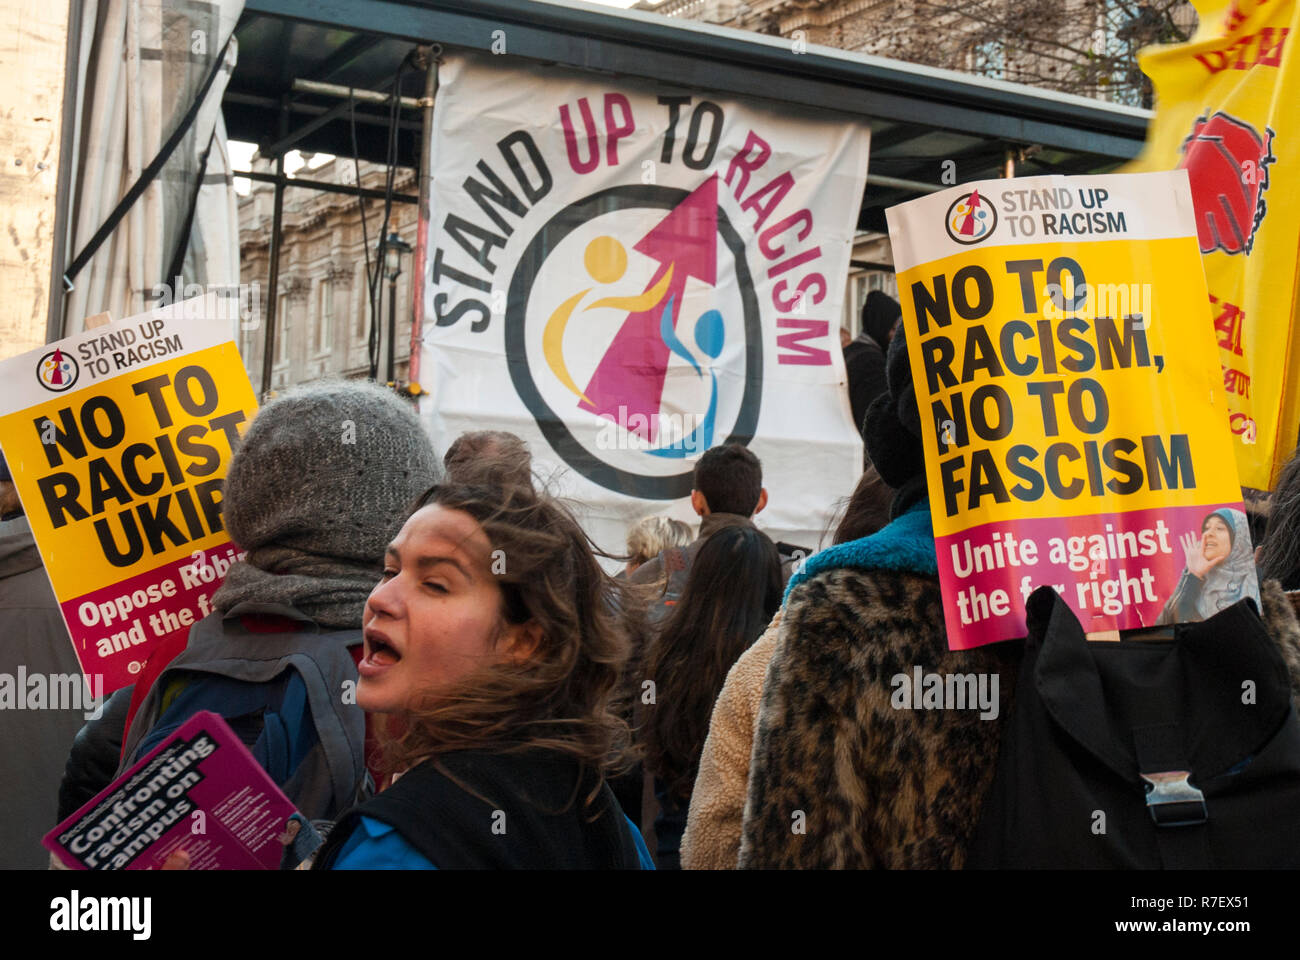 London, UK. 9th December 2018. Anti racist demonstration opposing the UKIP rally 'Brexit betrayal' led by Tommy Robinson AKA Stephen Yaxley-Lennon on the same day and place (Whitehall, London UK) The anti-racist demonstration had about 5,000 protesters while the right wing National UKIP demonstration had up to 1,000 protesters. - Stock Image